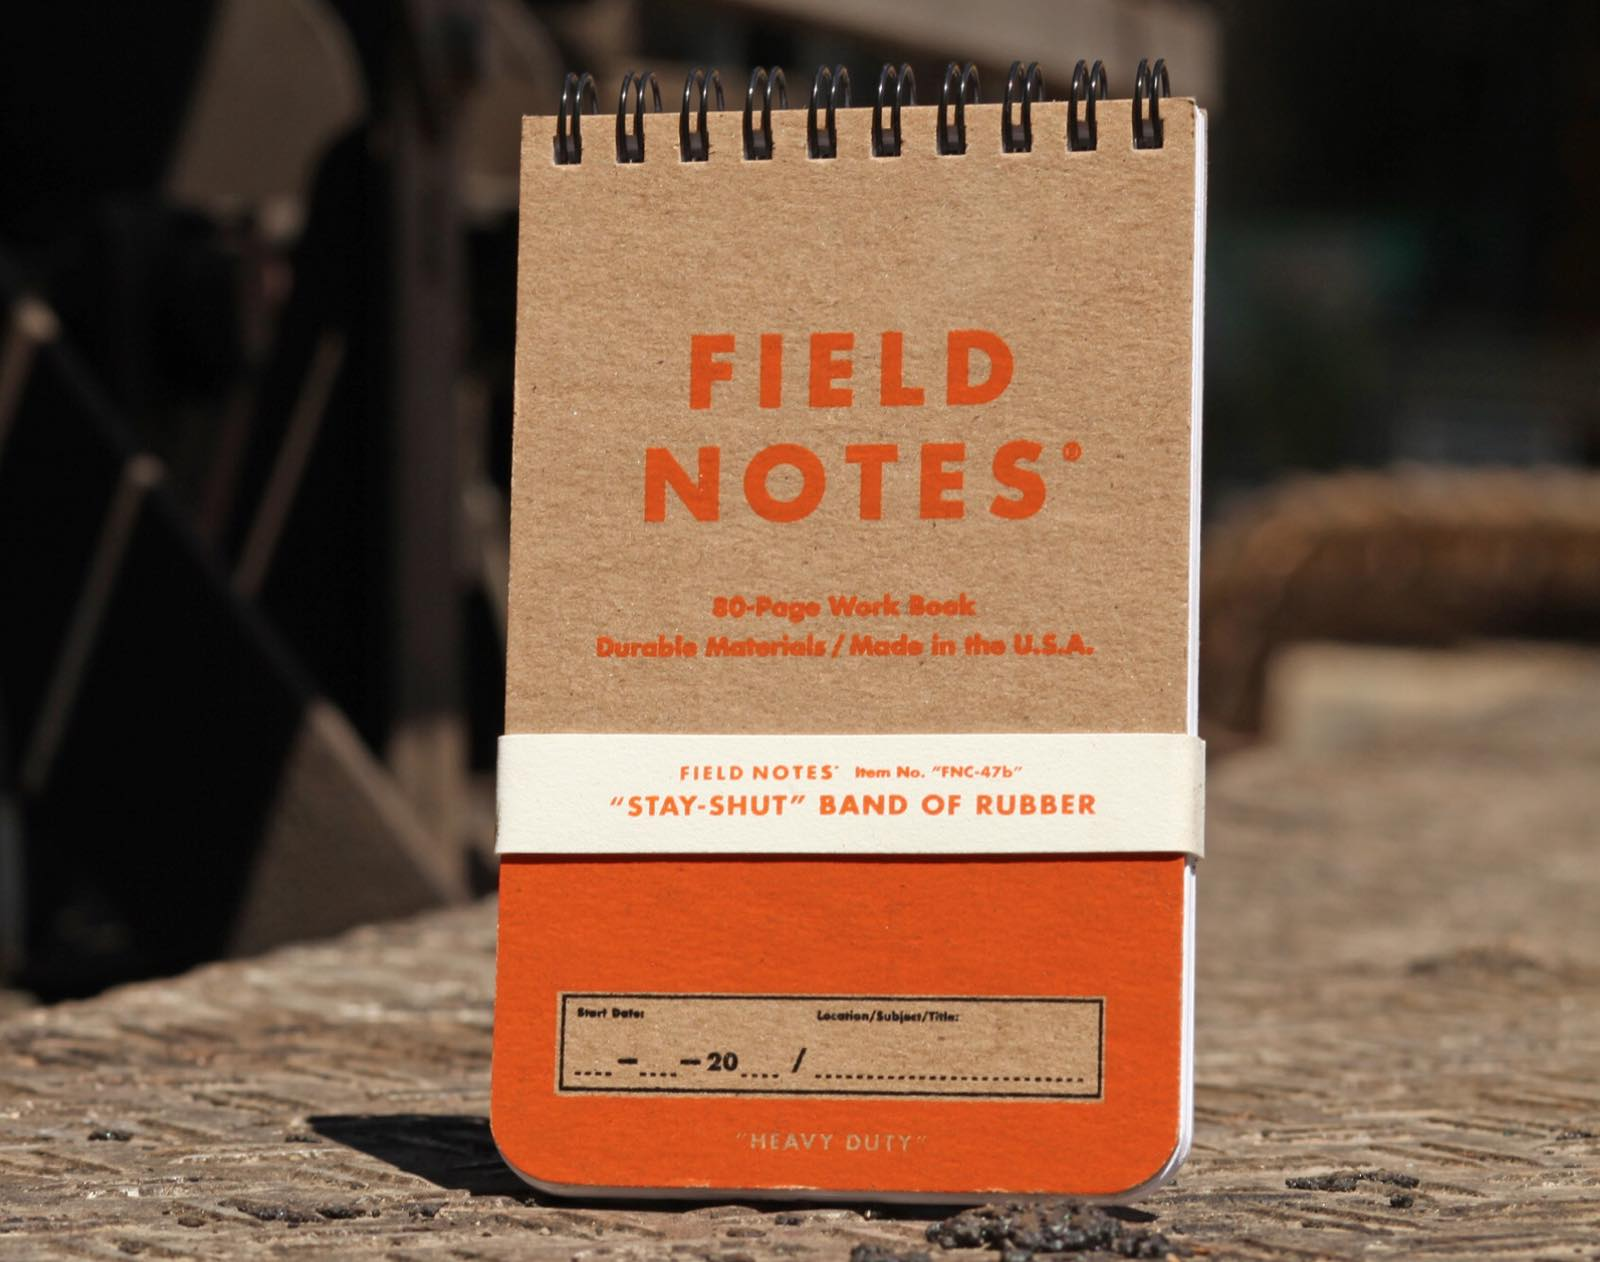 field-notes-heavy-duty-edition-stay-shut-rubber-band-fnc-47b